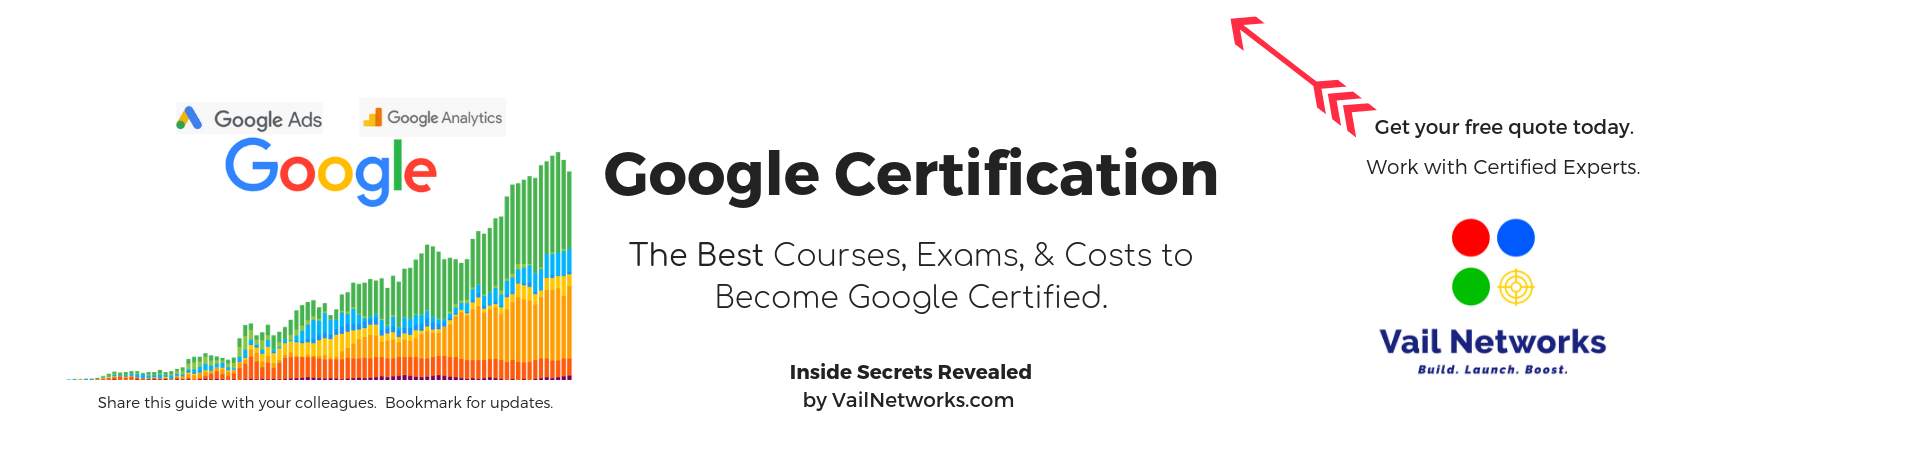 Google Certification Best Courses Exams Training To Become